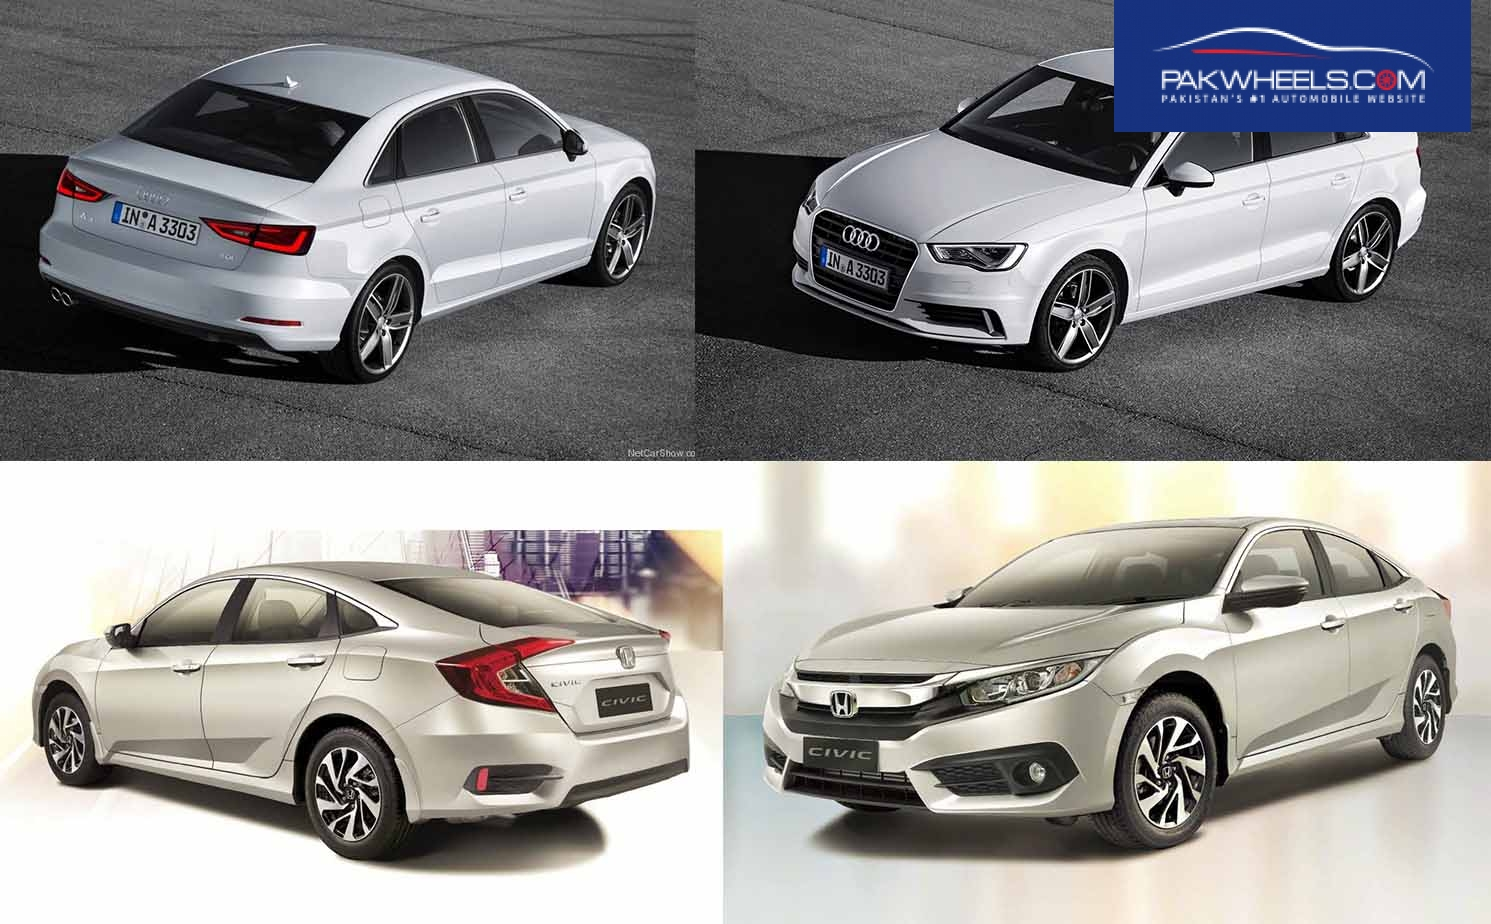 Civic and Audi A3 Exterior Compared